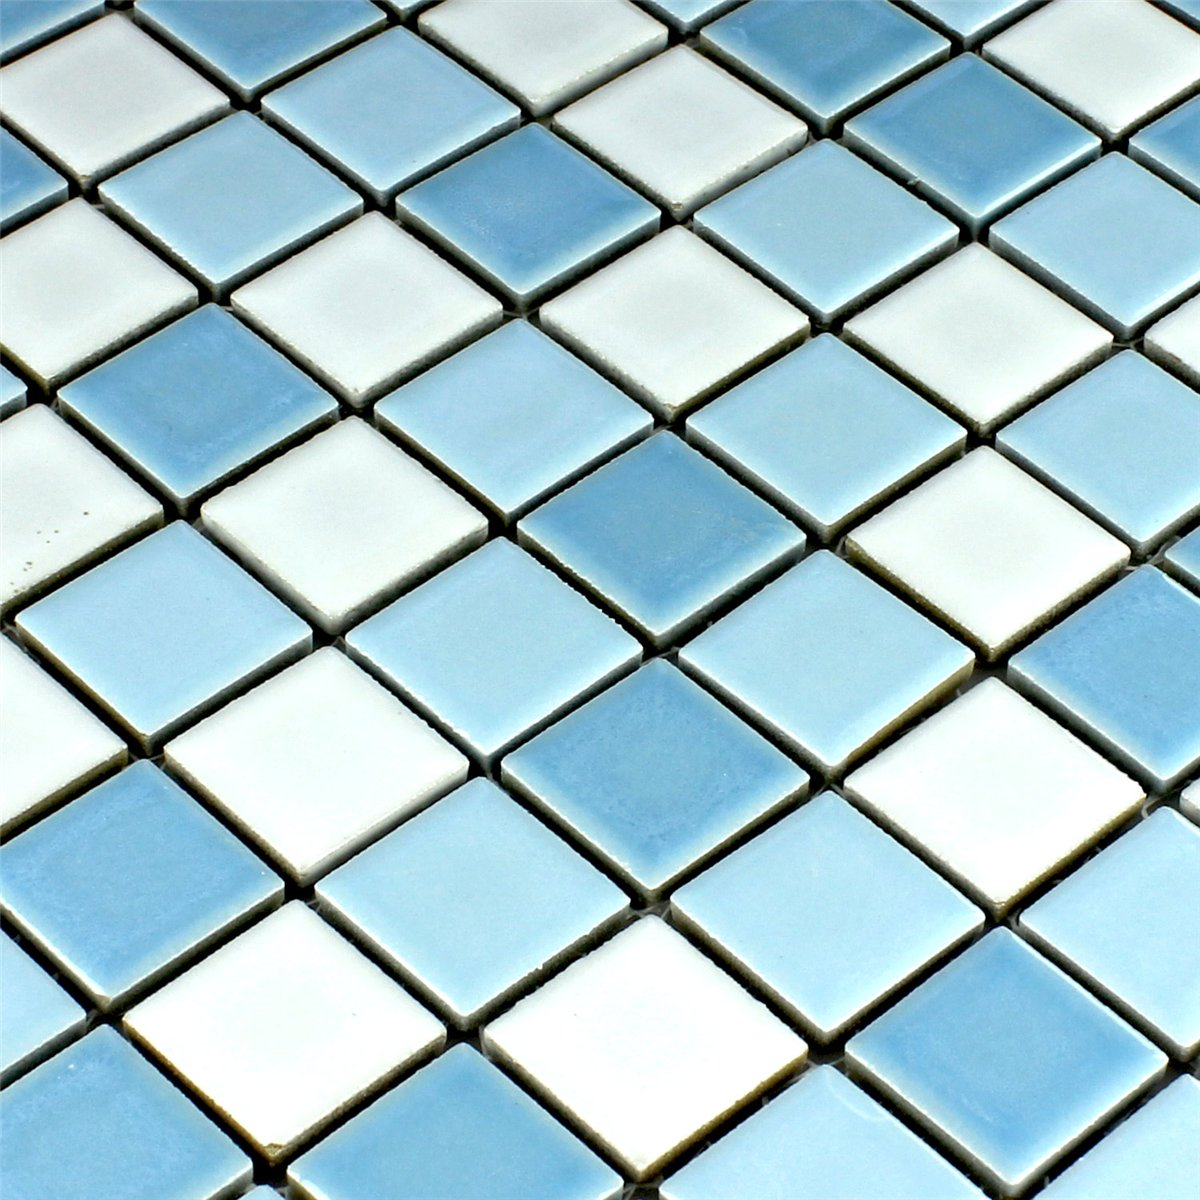 Ceramic Mosaic Tiles Blue White 25x25x5mm | www.mosafil.co.uk